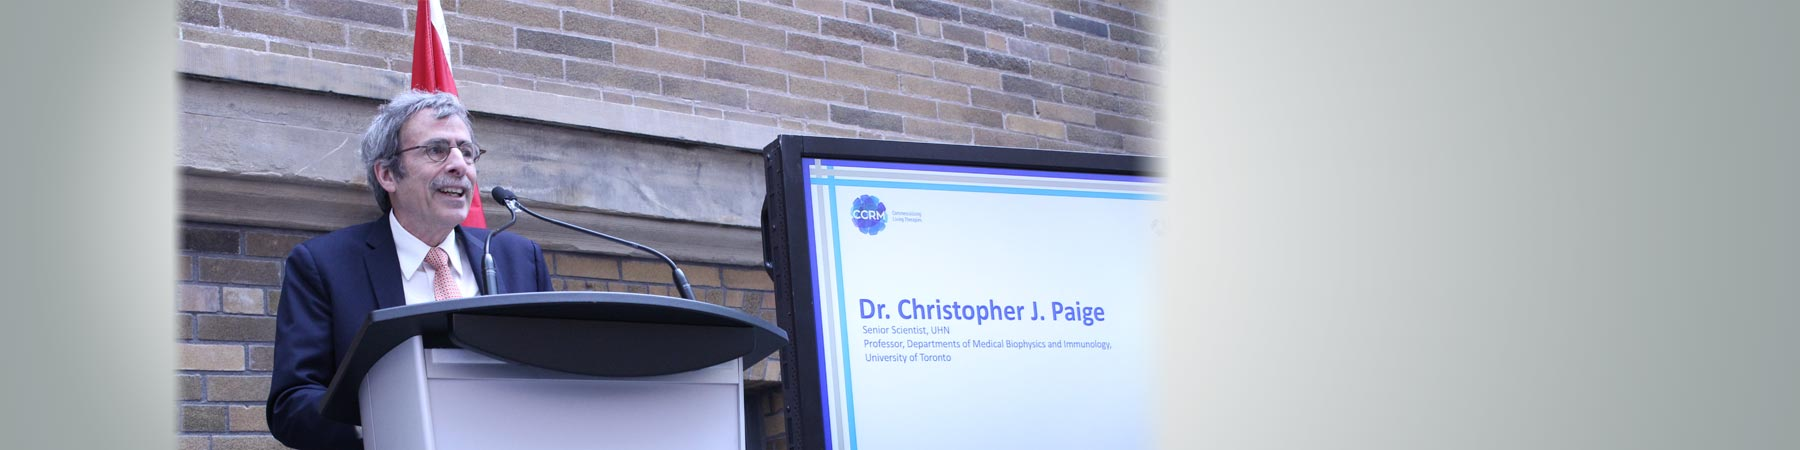 Dr. Chris Paige